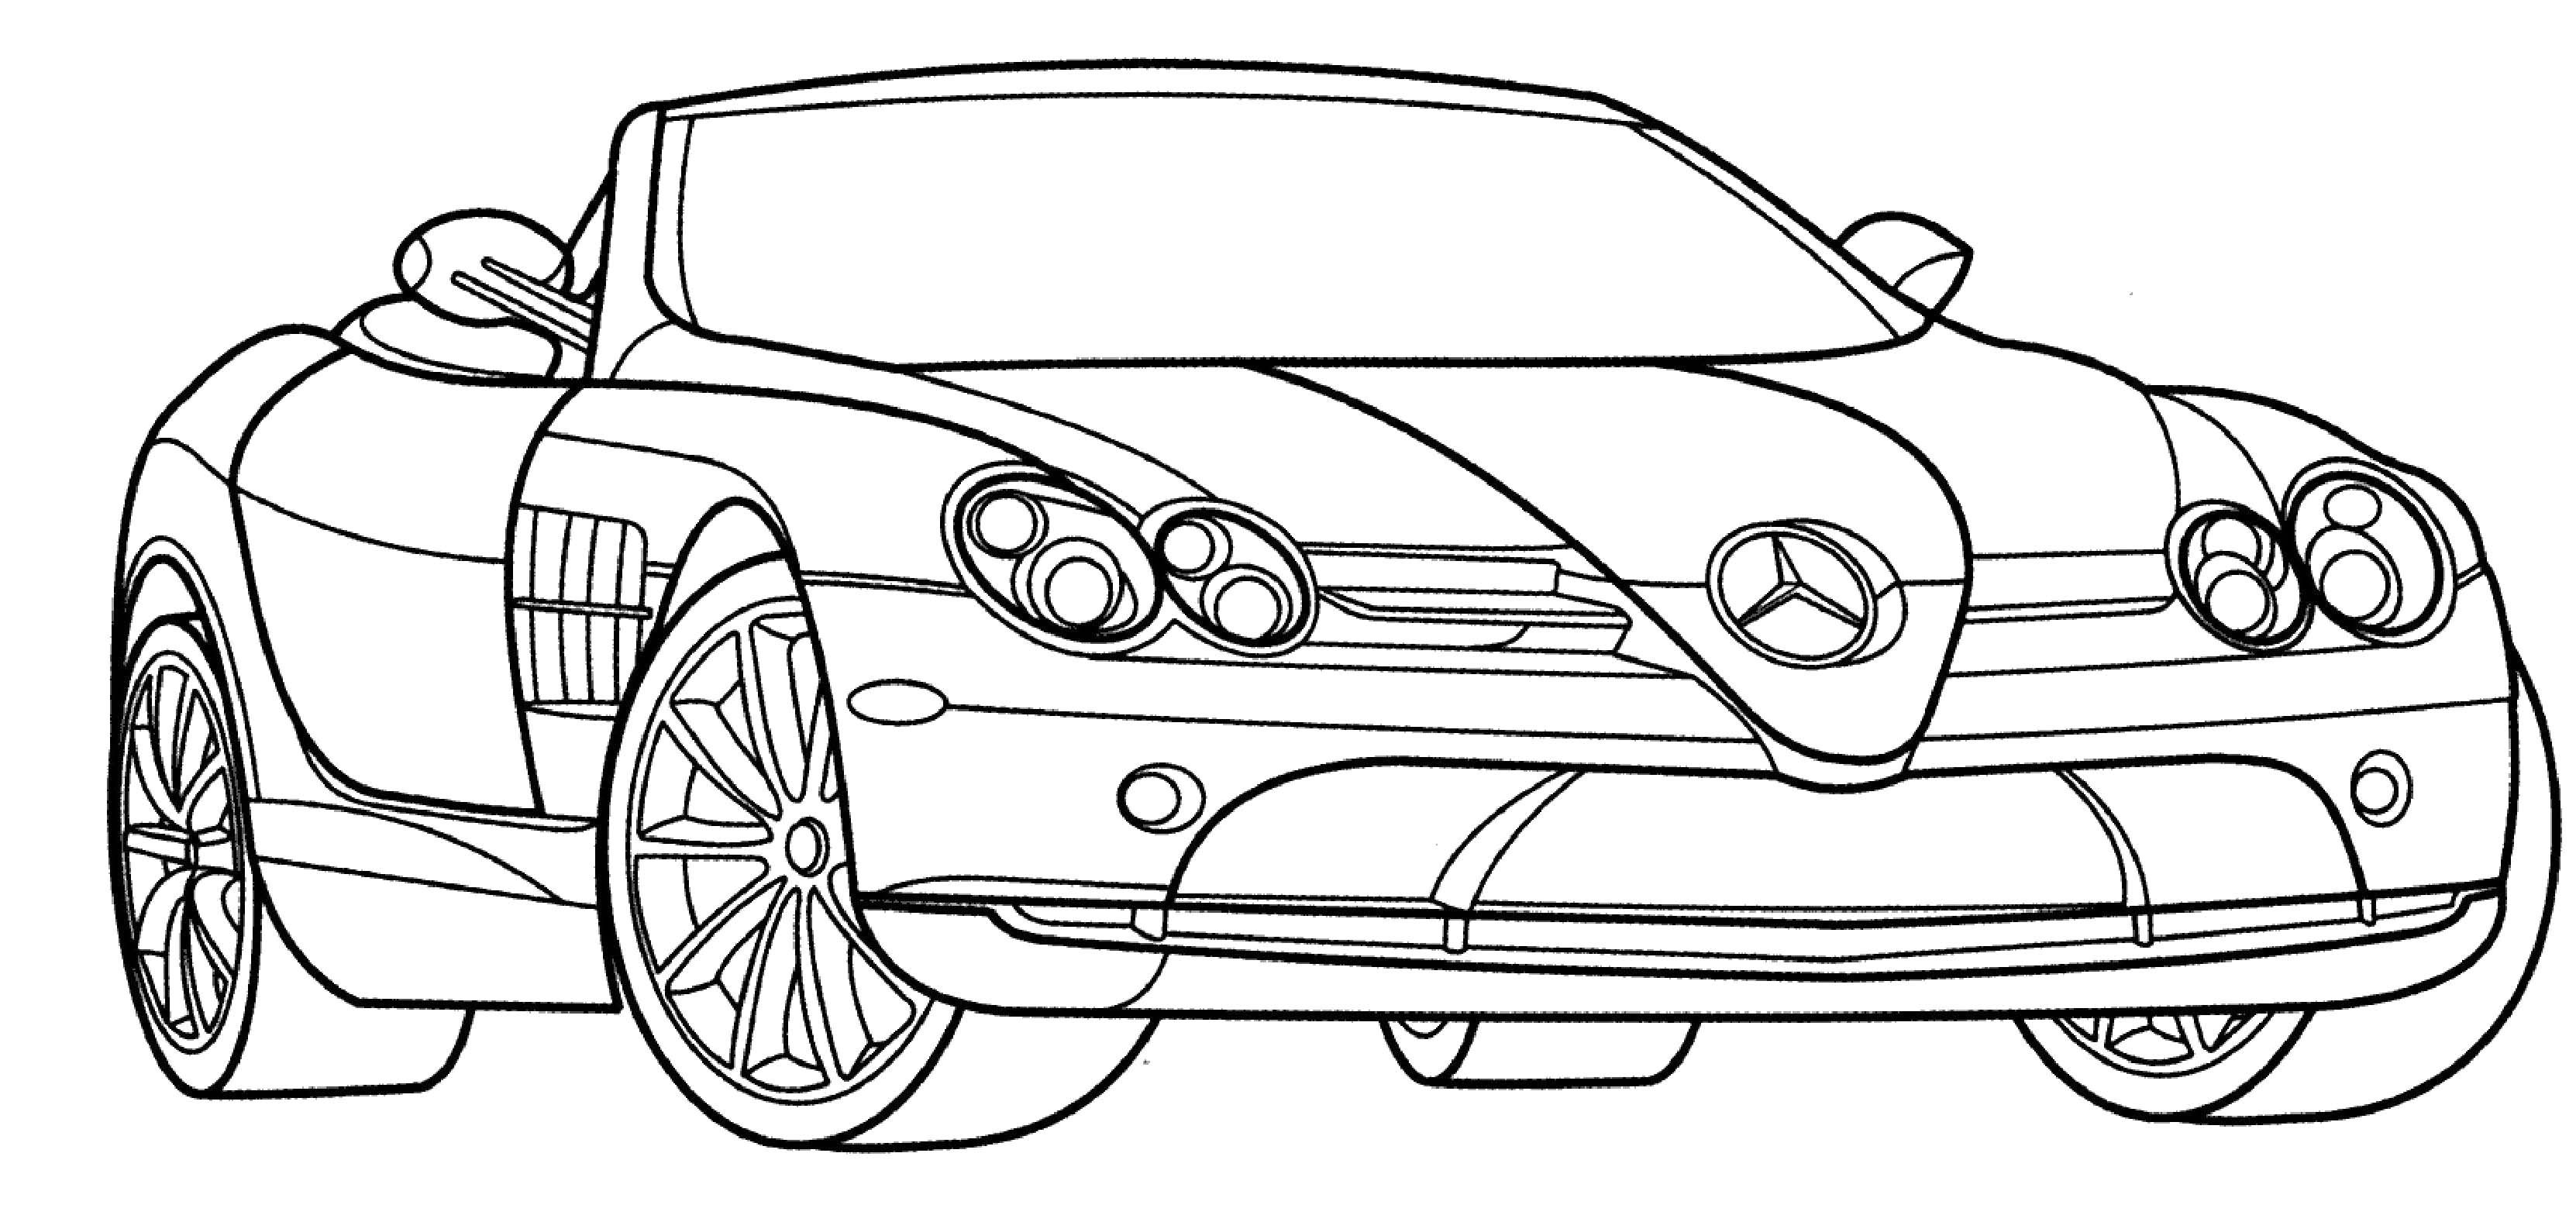 Super Car Coloring Pages Resume Format Download Pdf | Cars ...